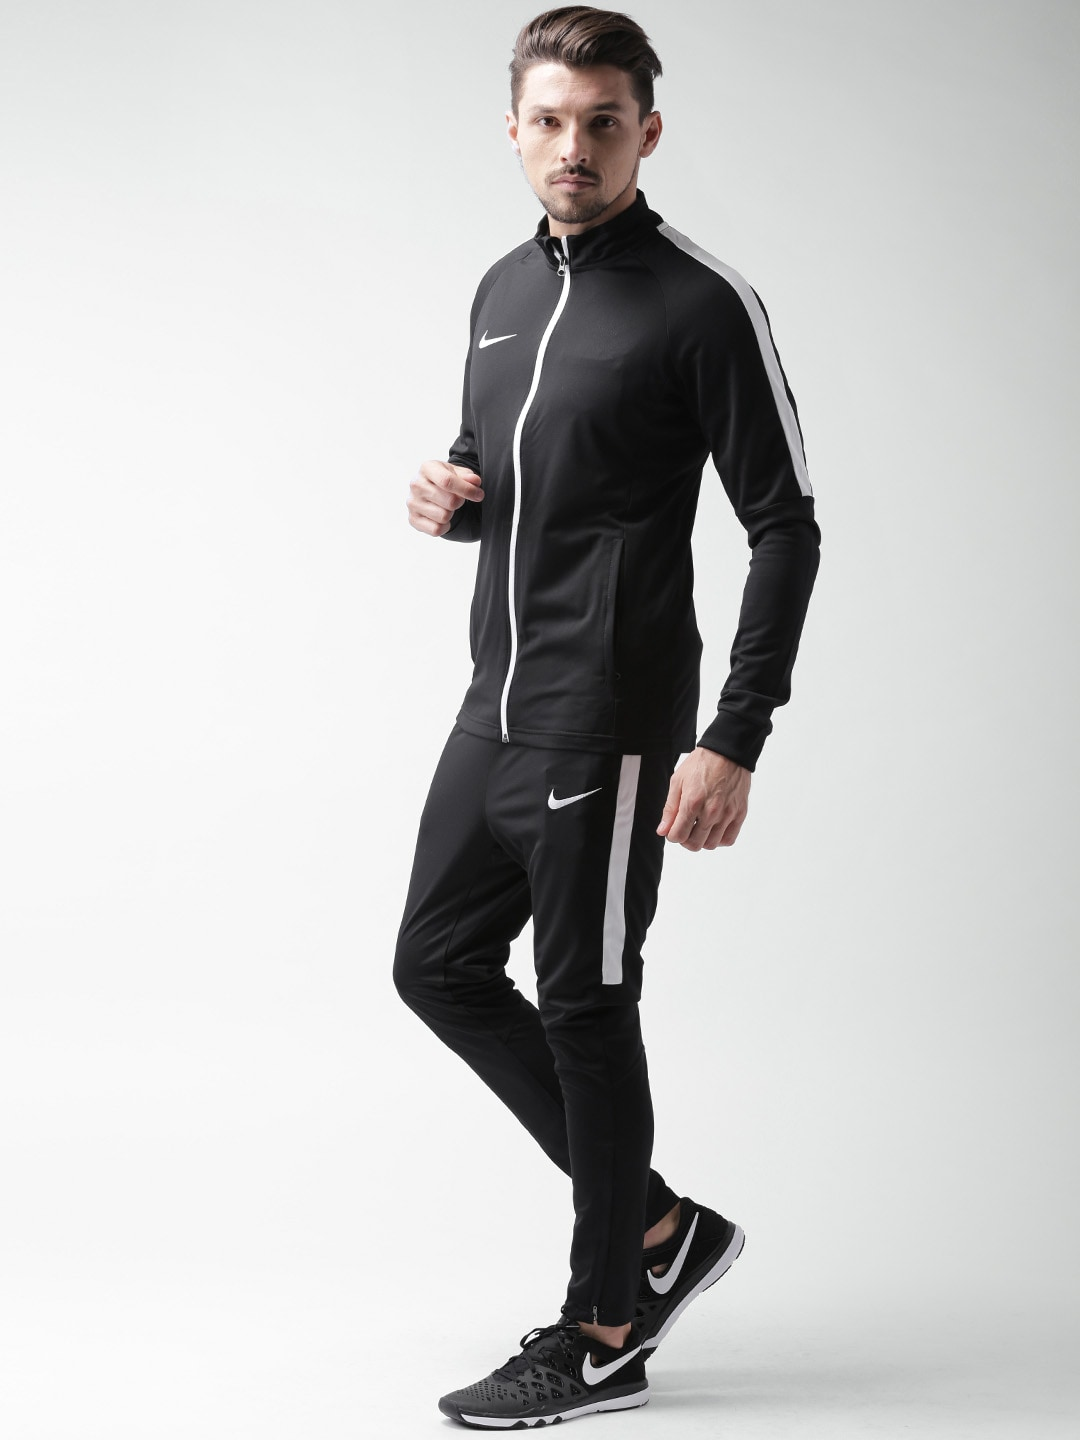 Shop adidas tracksuits, track pants, and jackets for men and women. Browse a variety of colors of tracksuits at nichapie.ml